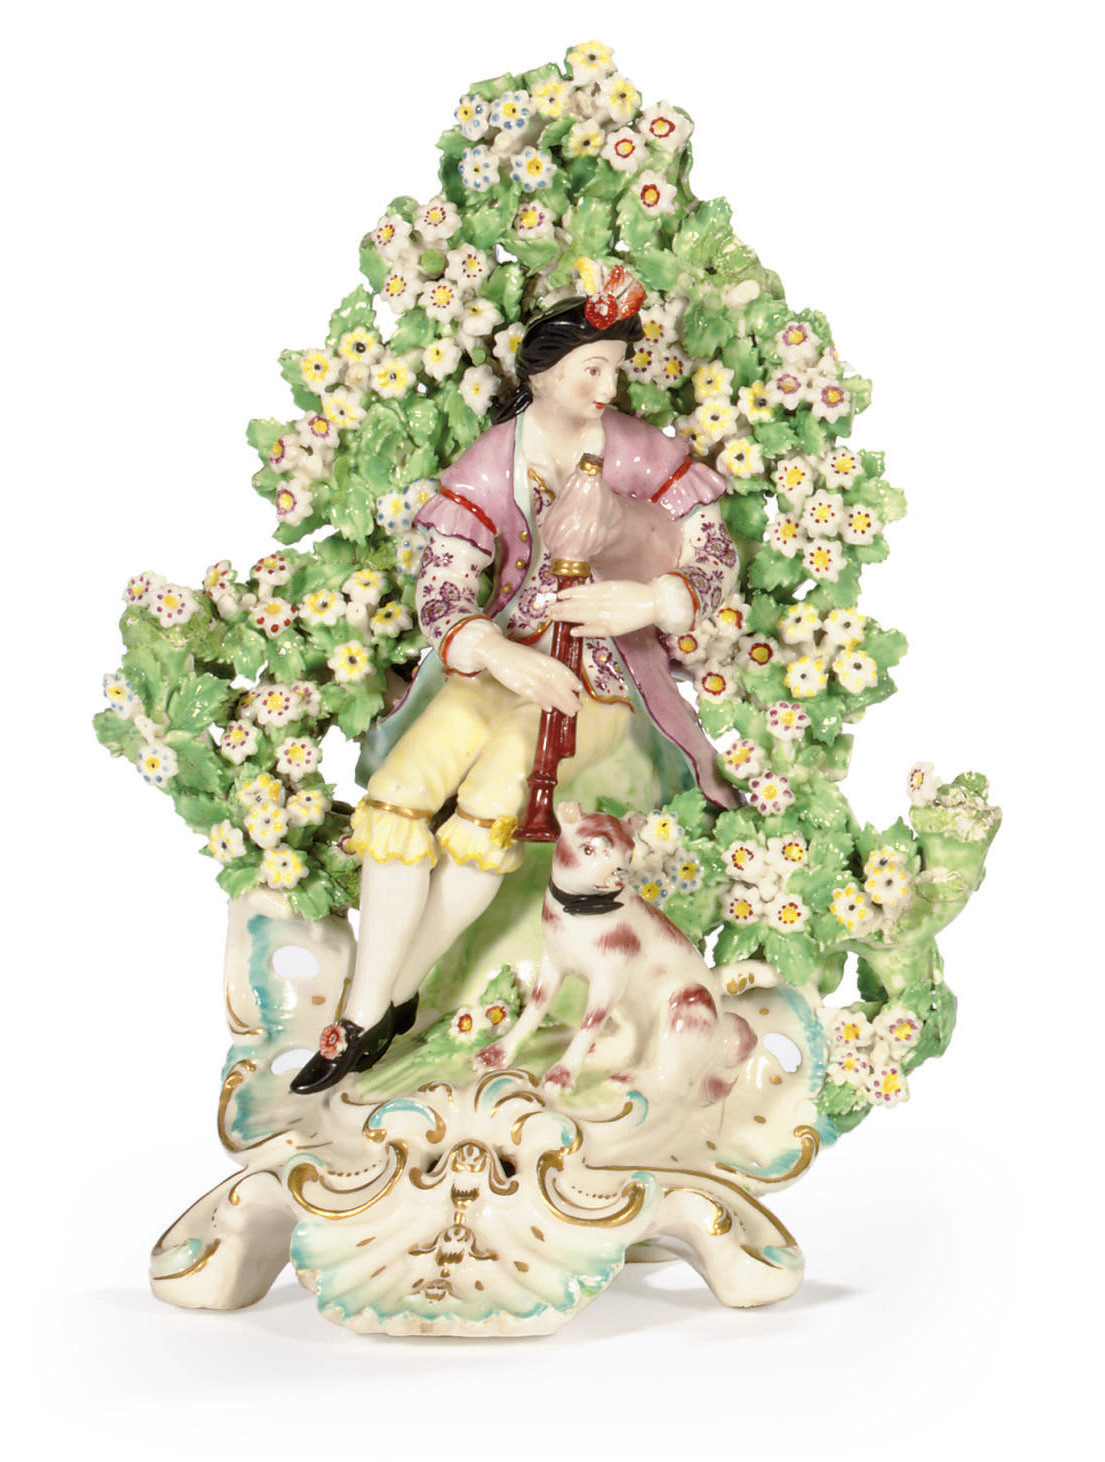 A DERBY BOCAGE FIGURE OF A SHE